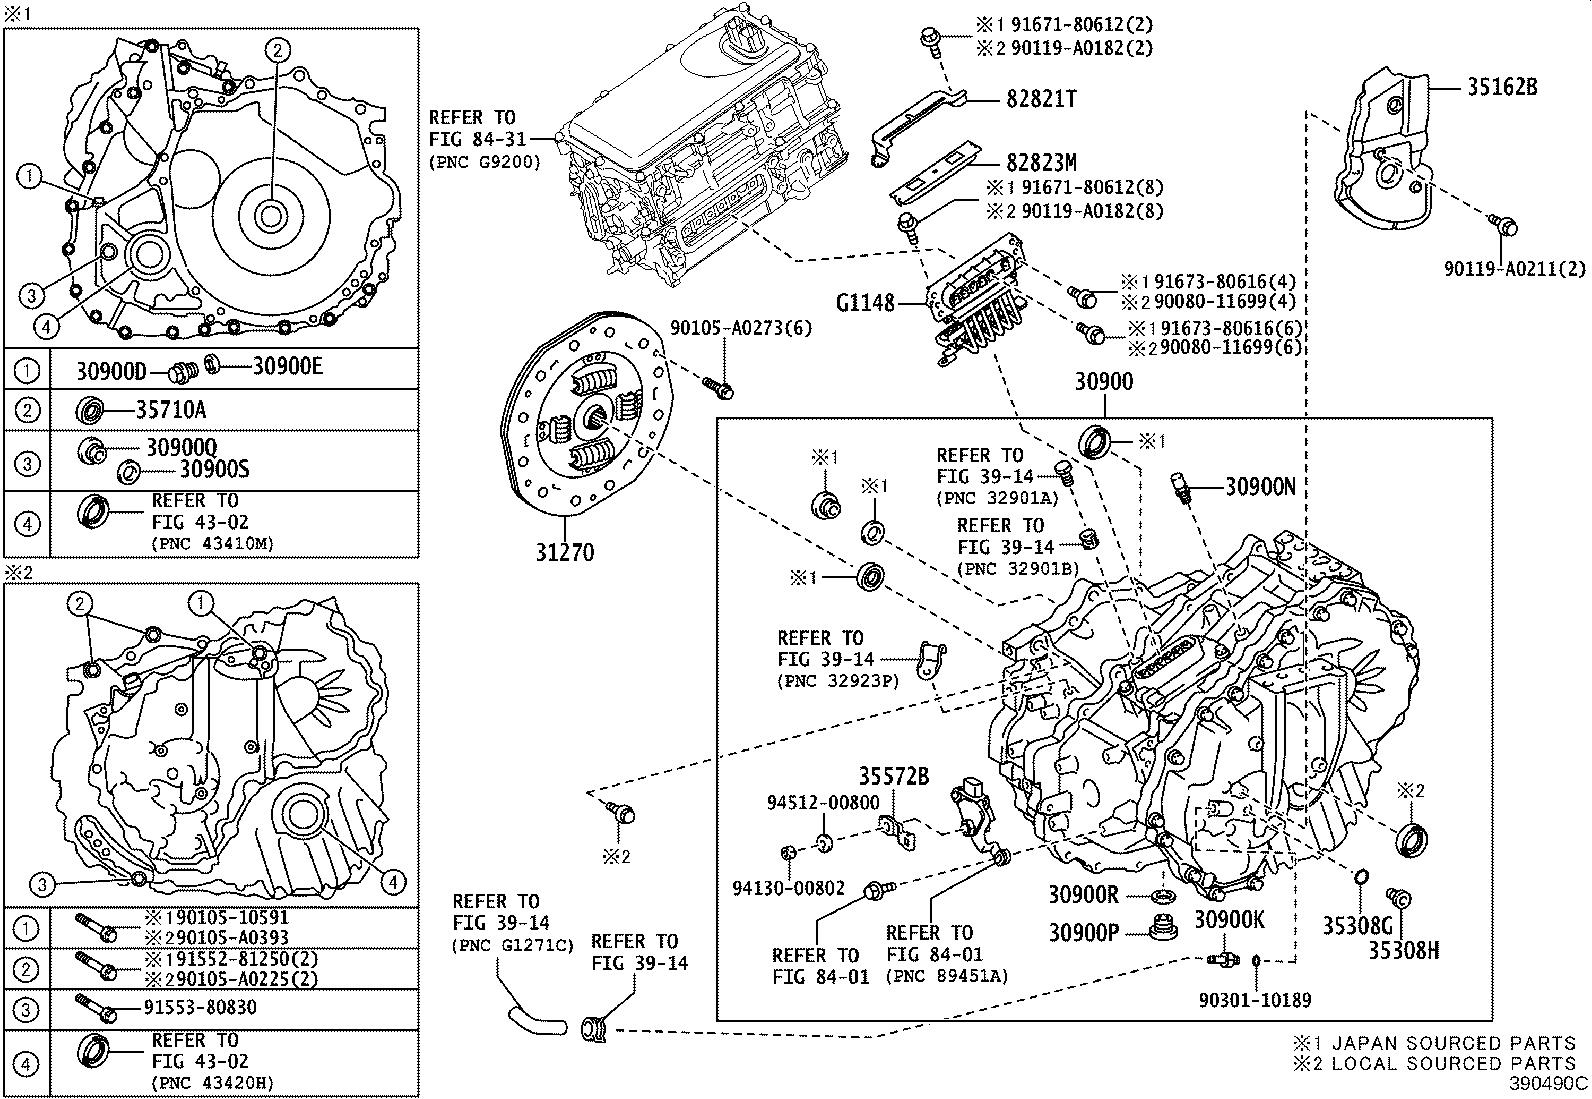 Toyota Camry Drive Motor Inverter Connector Wiring